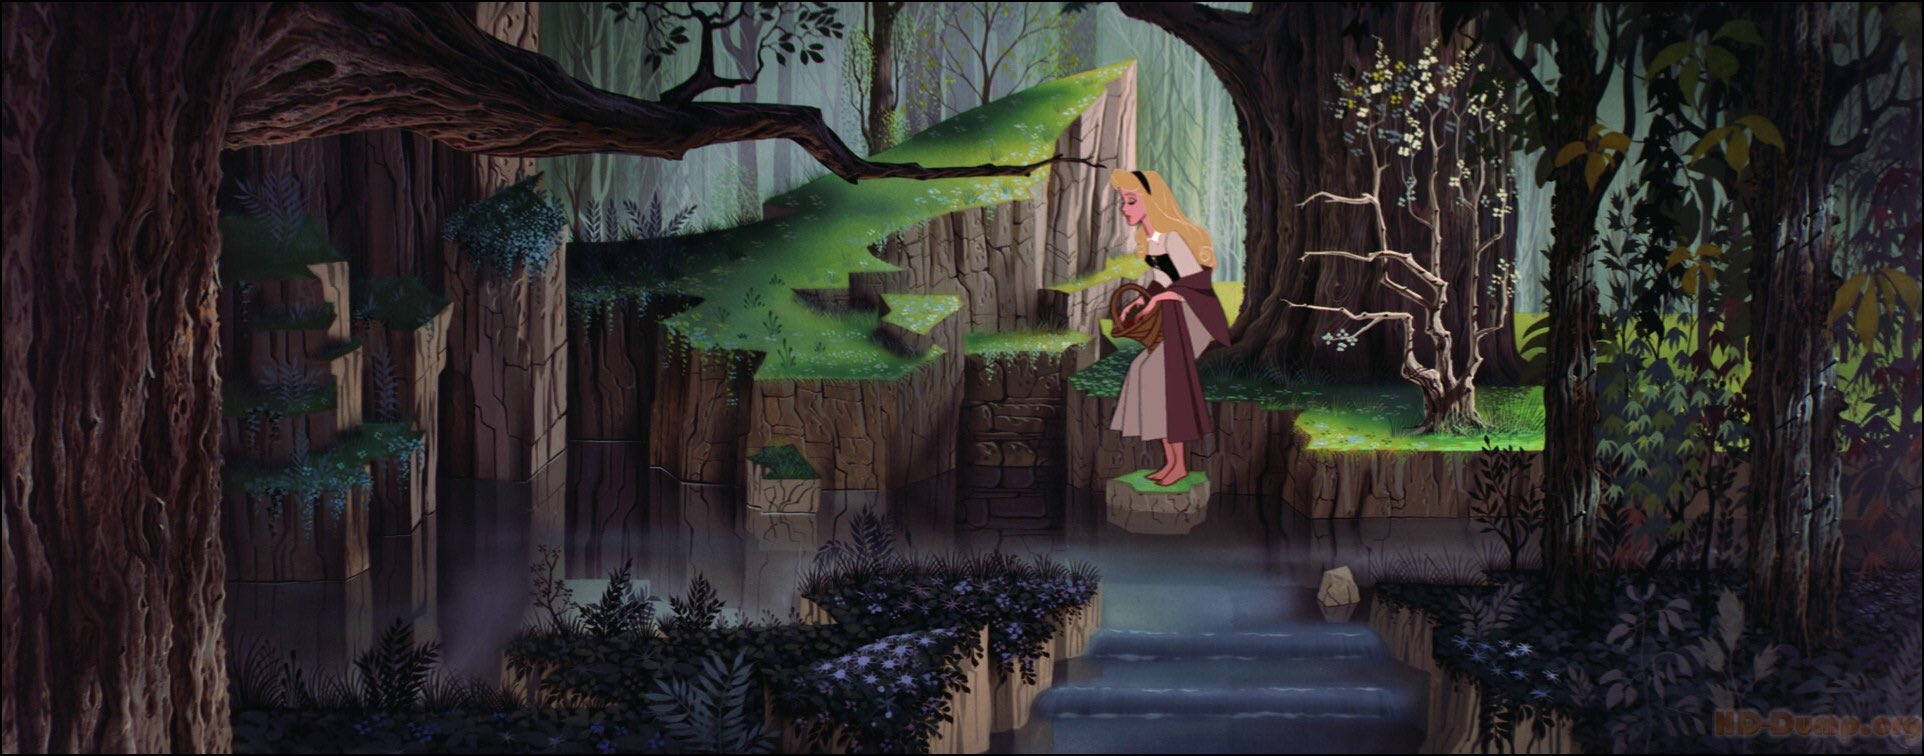 Sleeping Beauty, 1959